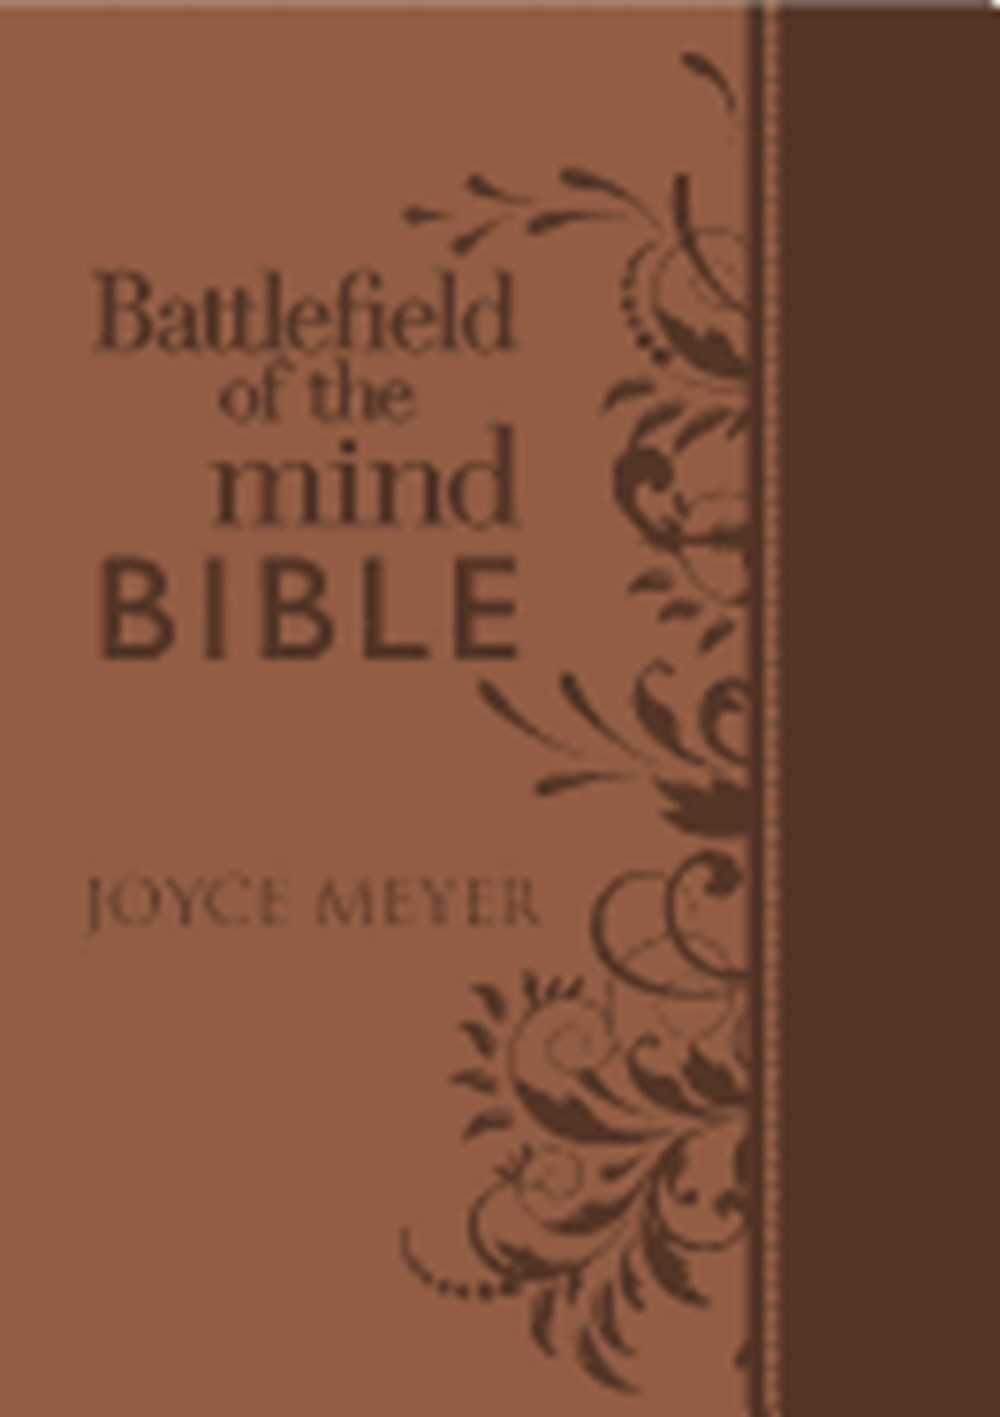 Battlefield of the Mind Bible Renew Your Mind Through the Power of God's Word